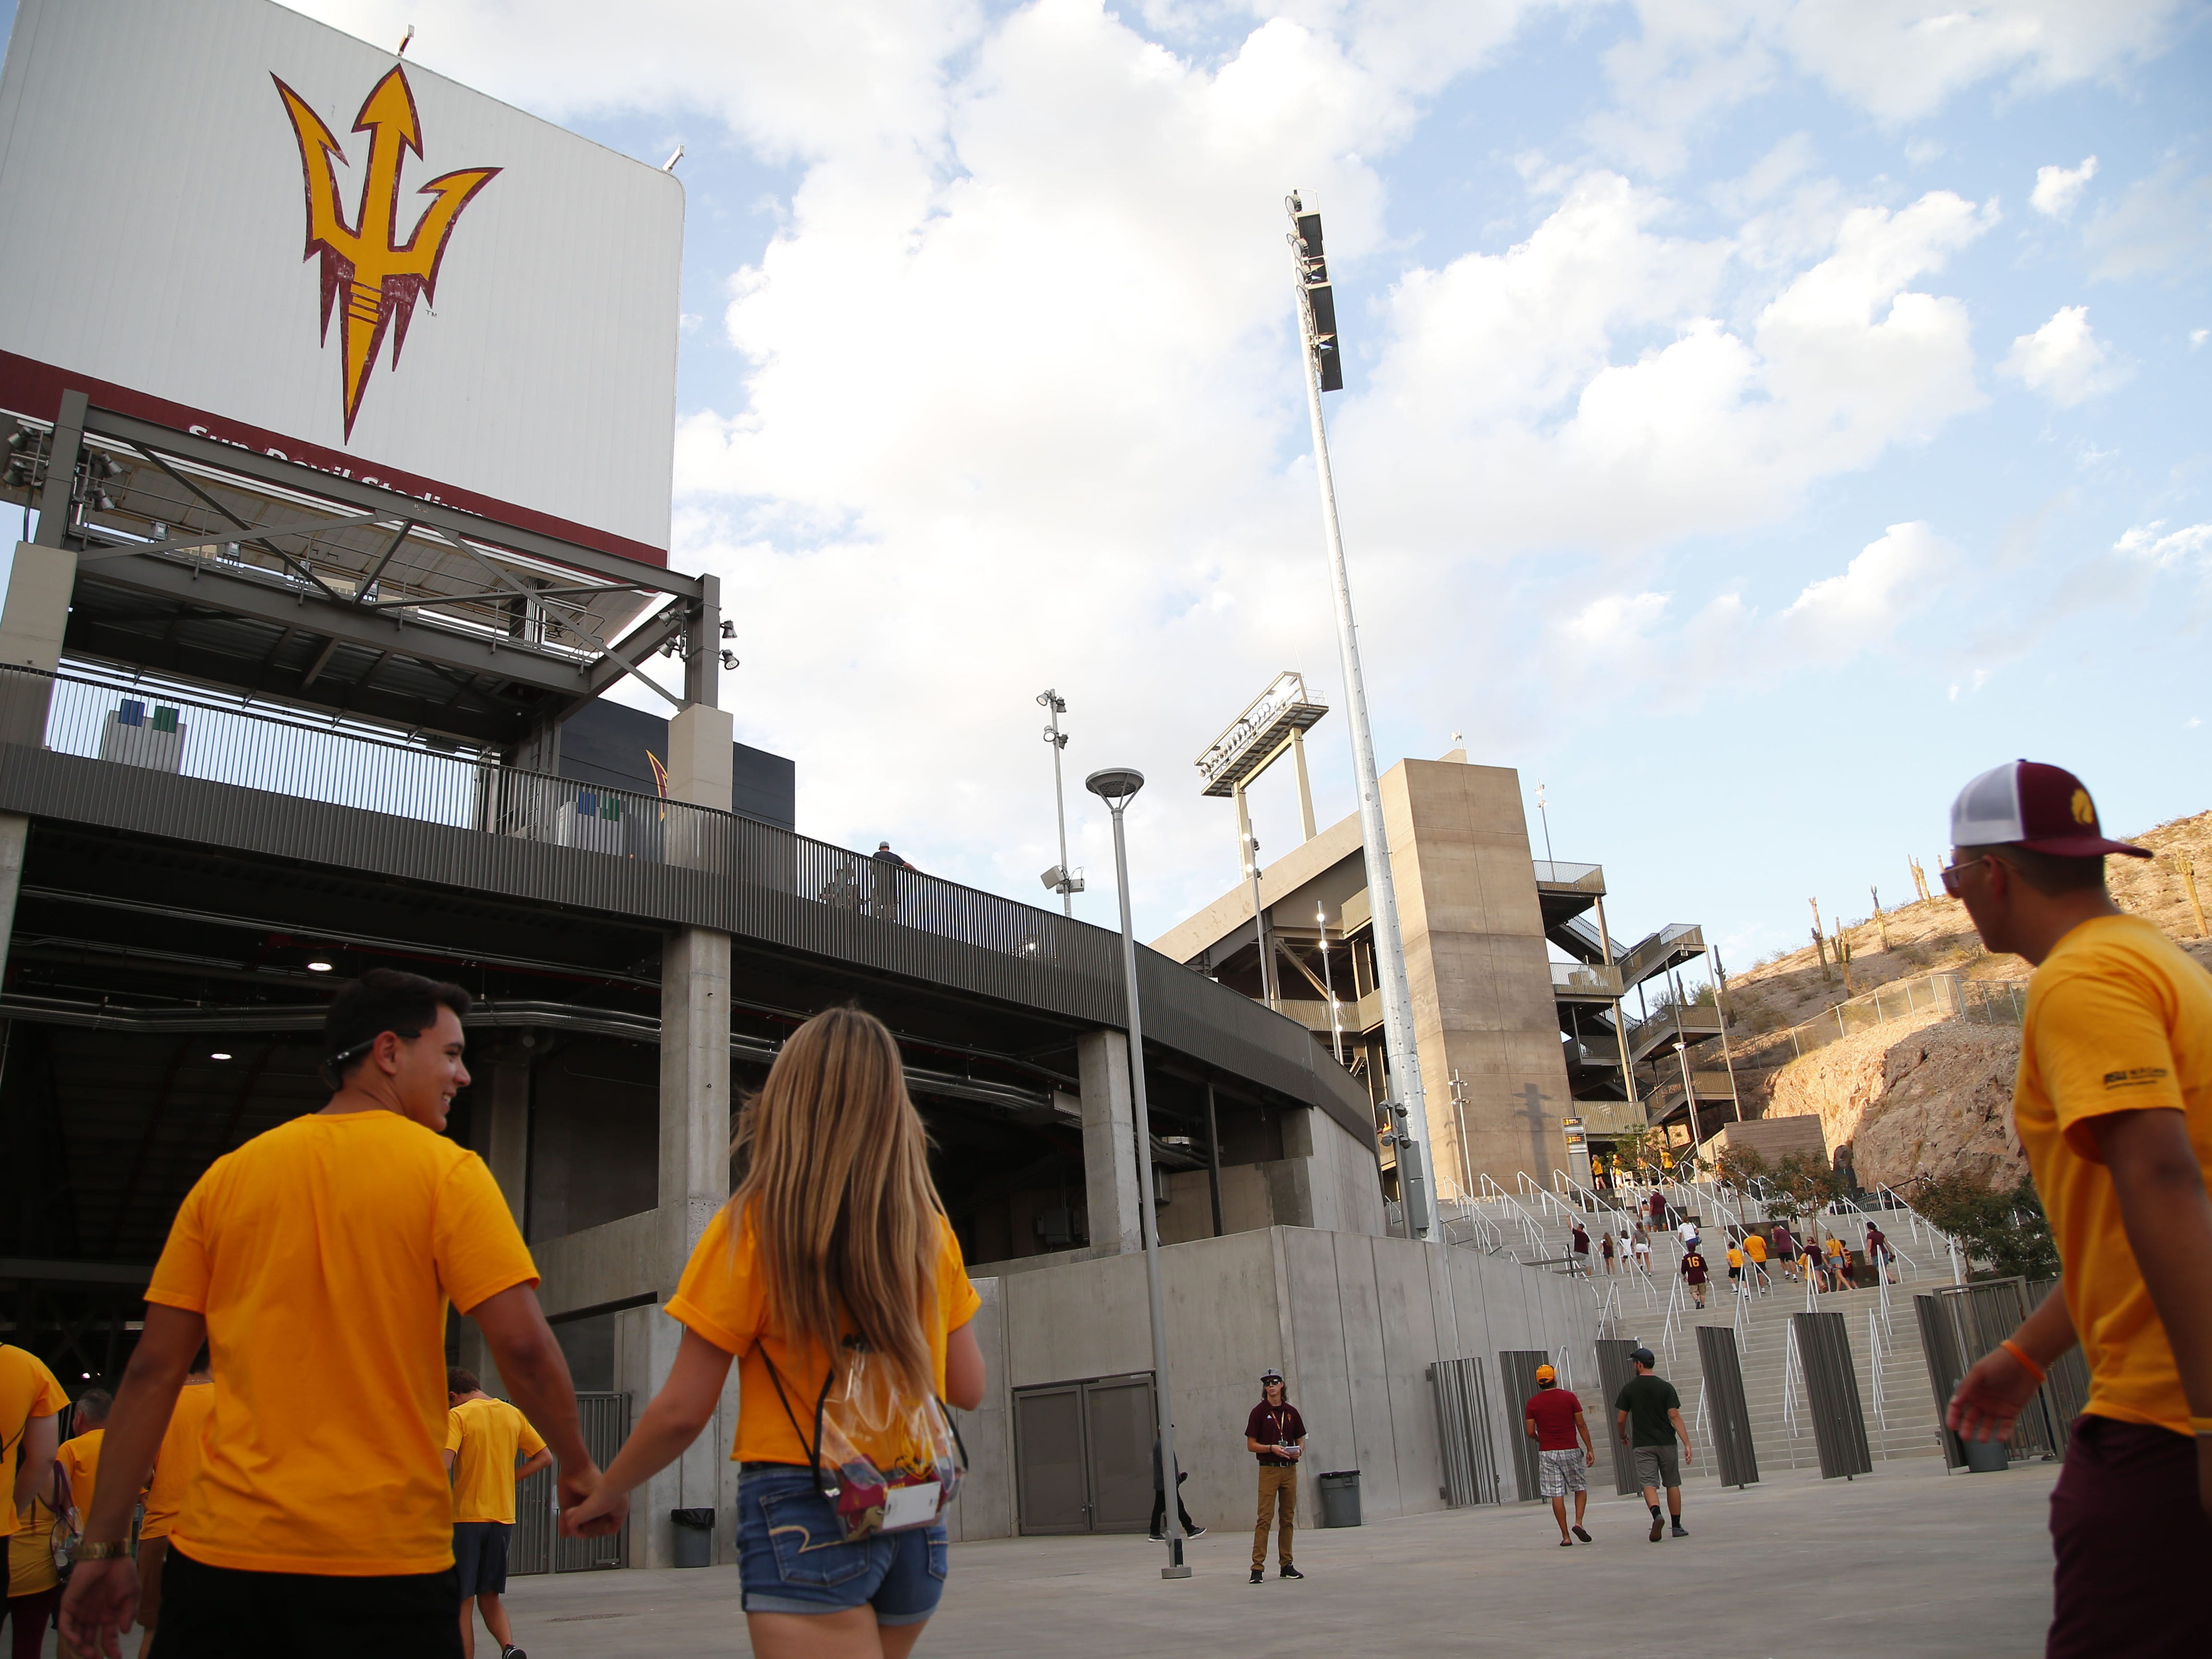 ASU fans enter the southeast side of the stadium before a football game at Sun Devil Stadium in Tempe on September 1, 2018.